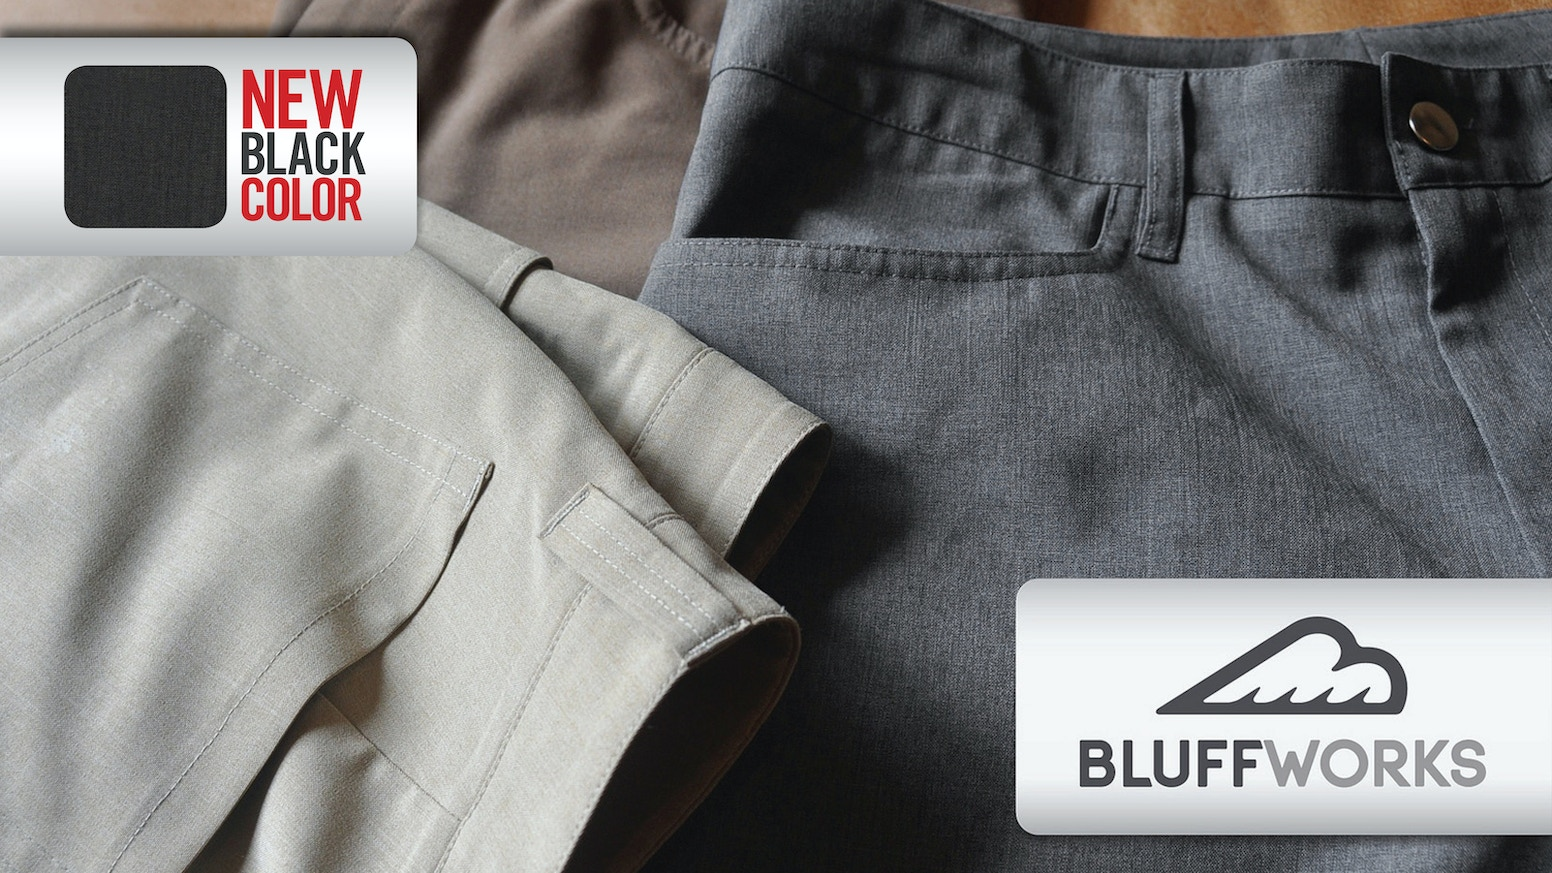 New line of men's pants wearable for days without washing or ironing. Suitable for the office or adventure, they fuel an active life.